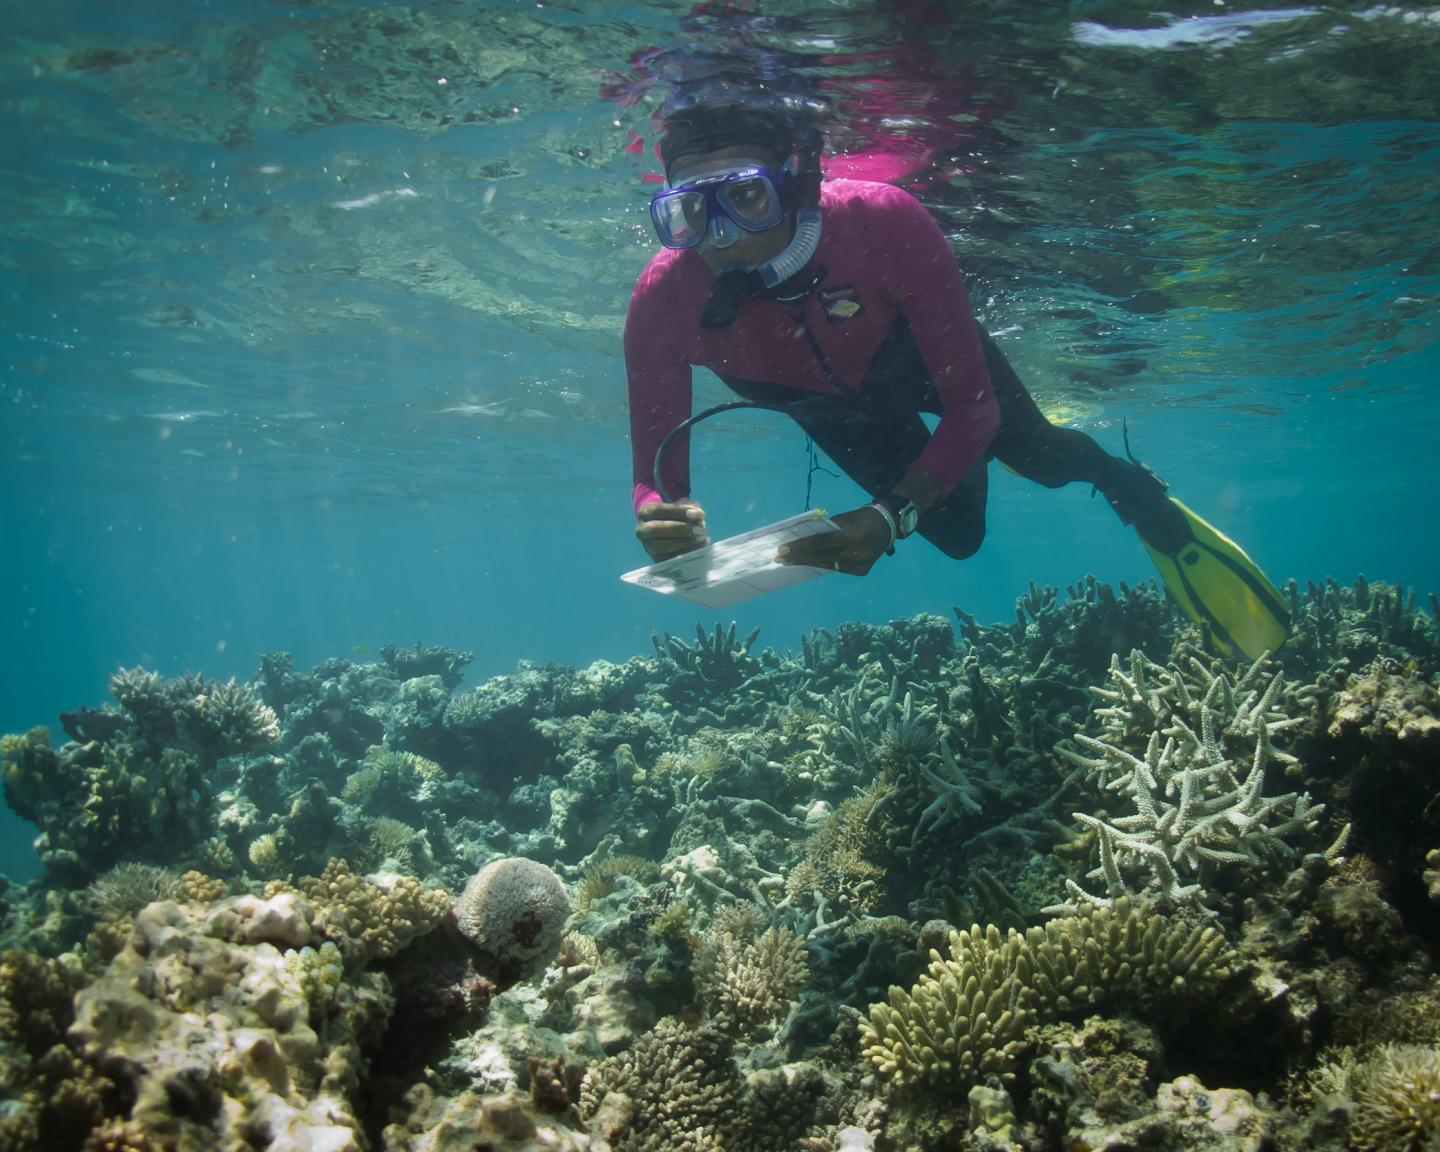 Researcher Gathering Data on Corals in Kenya